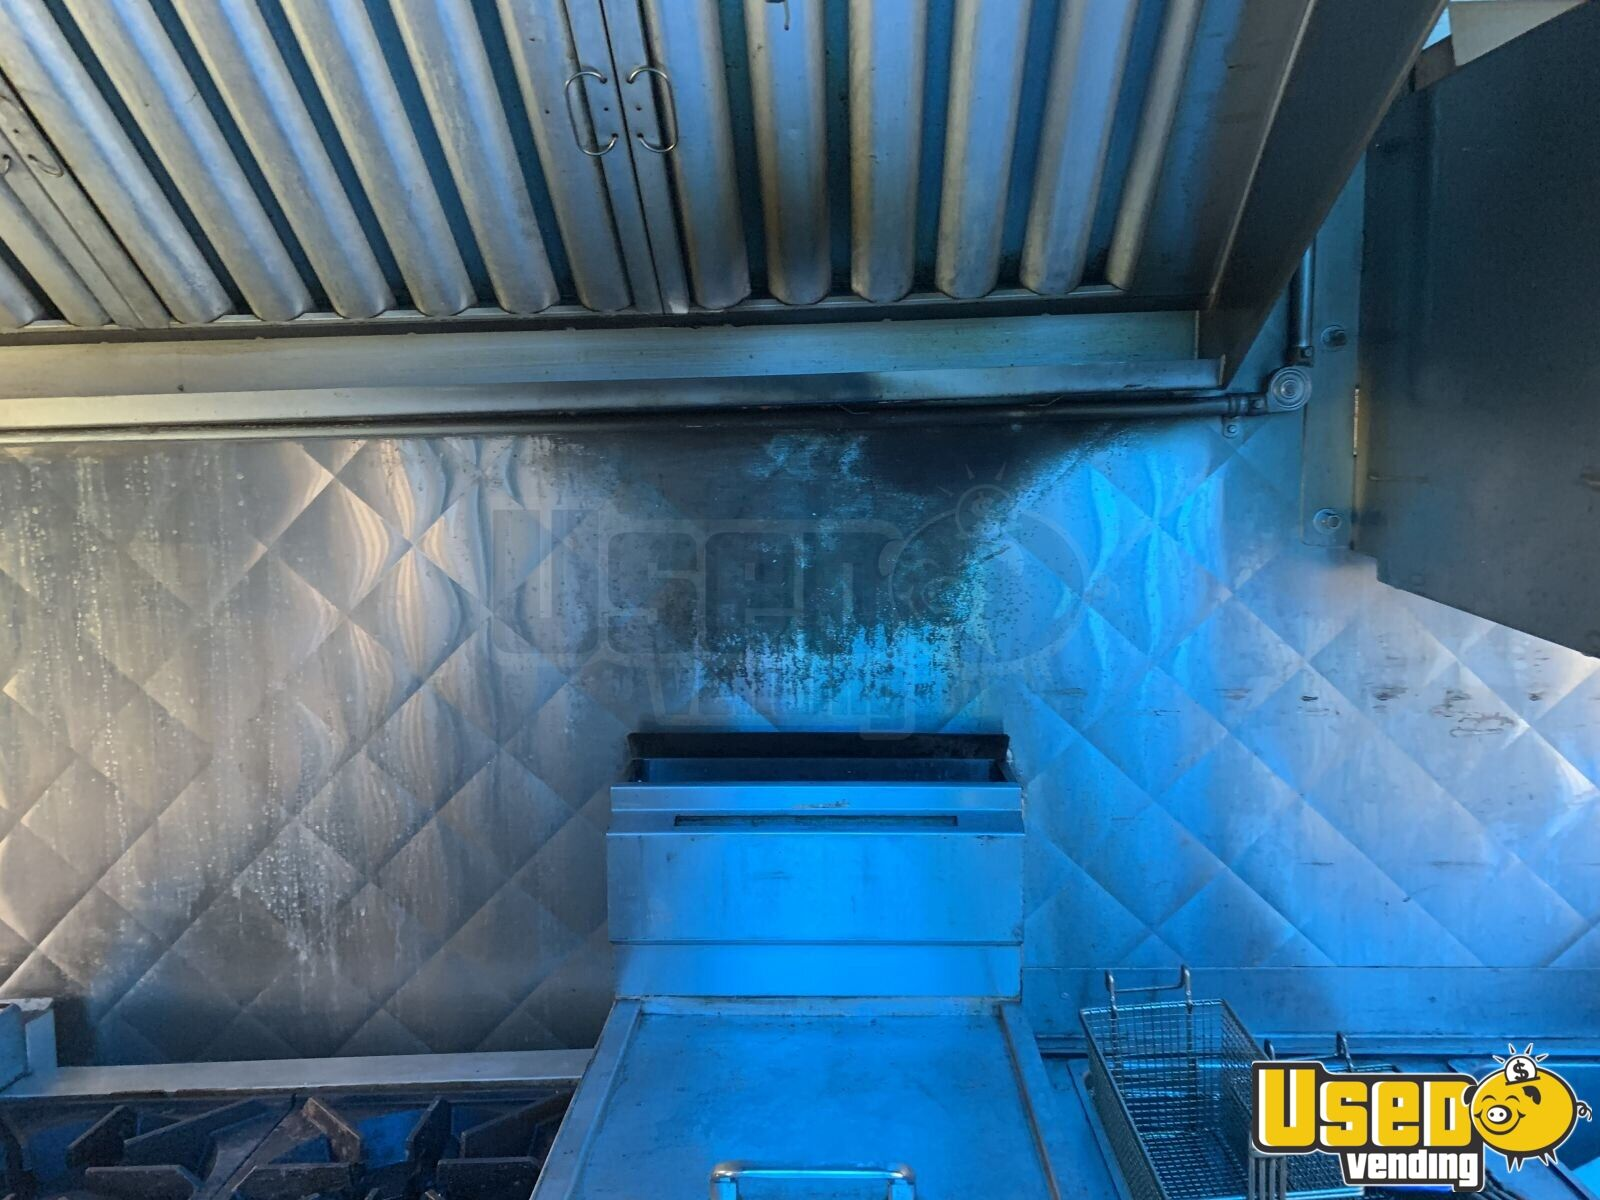 2005 28' Diesel All-purpose Food Truck Upright Freezer New York Diesel Engine for Sale - 11